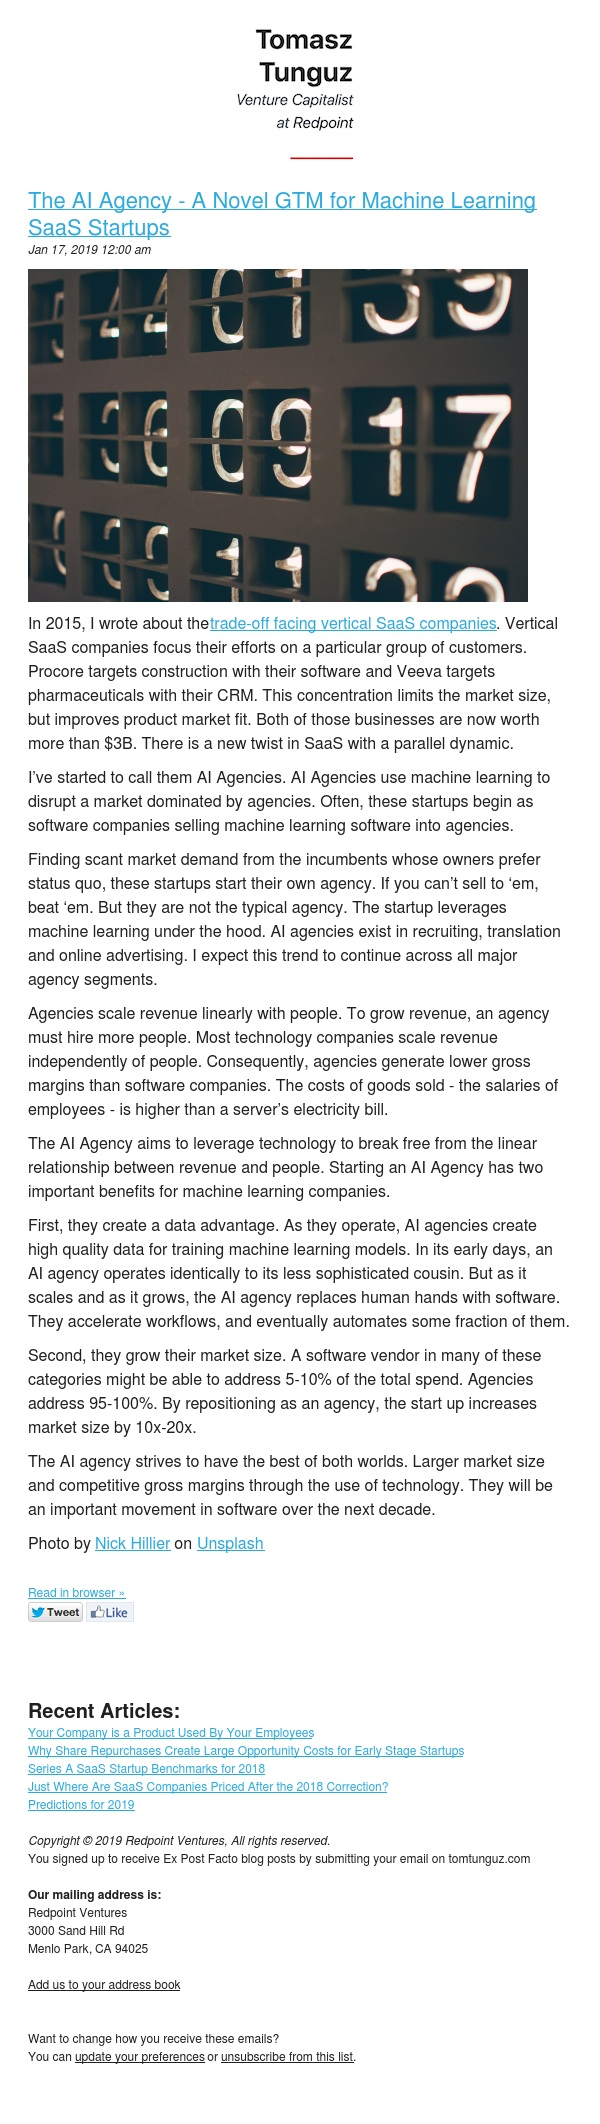 The AI Agency - A Novel GTM for Machine Learning SaaS Startups